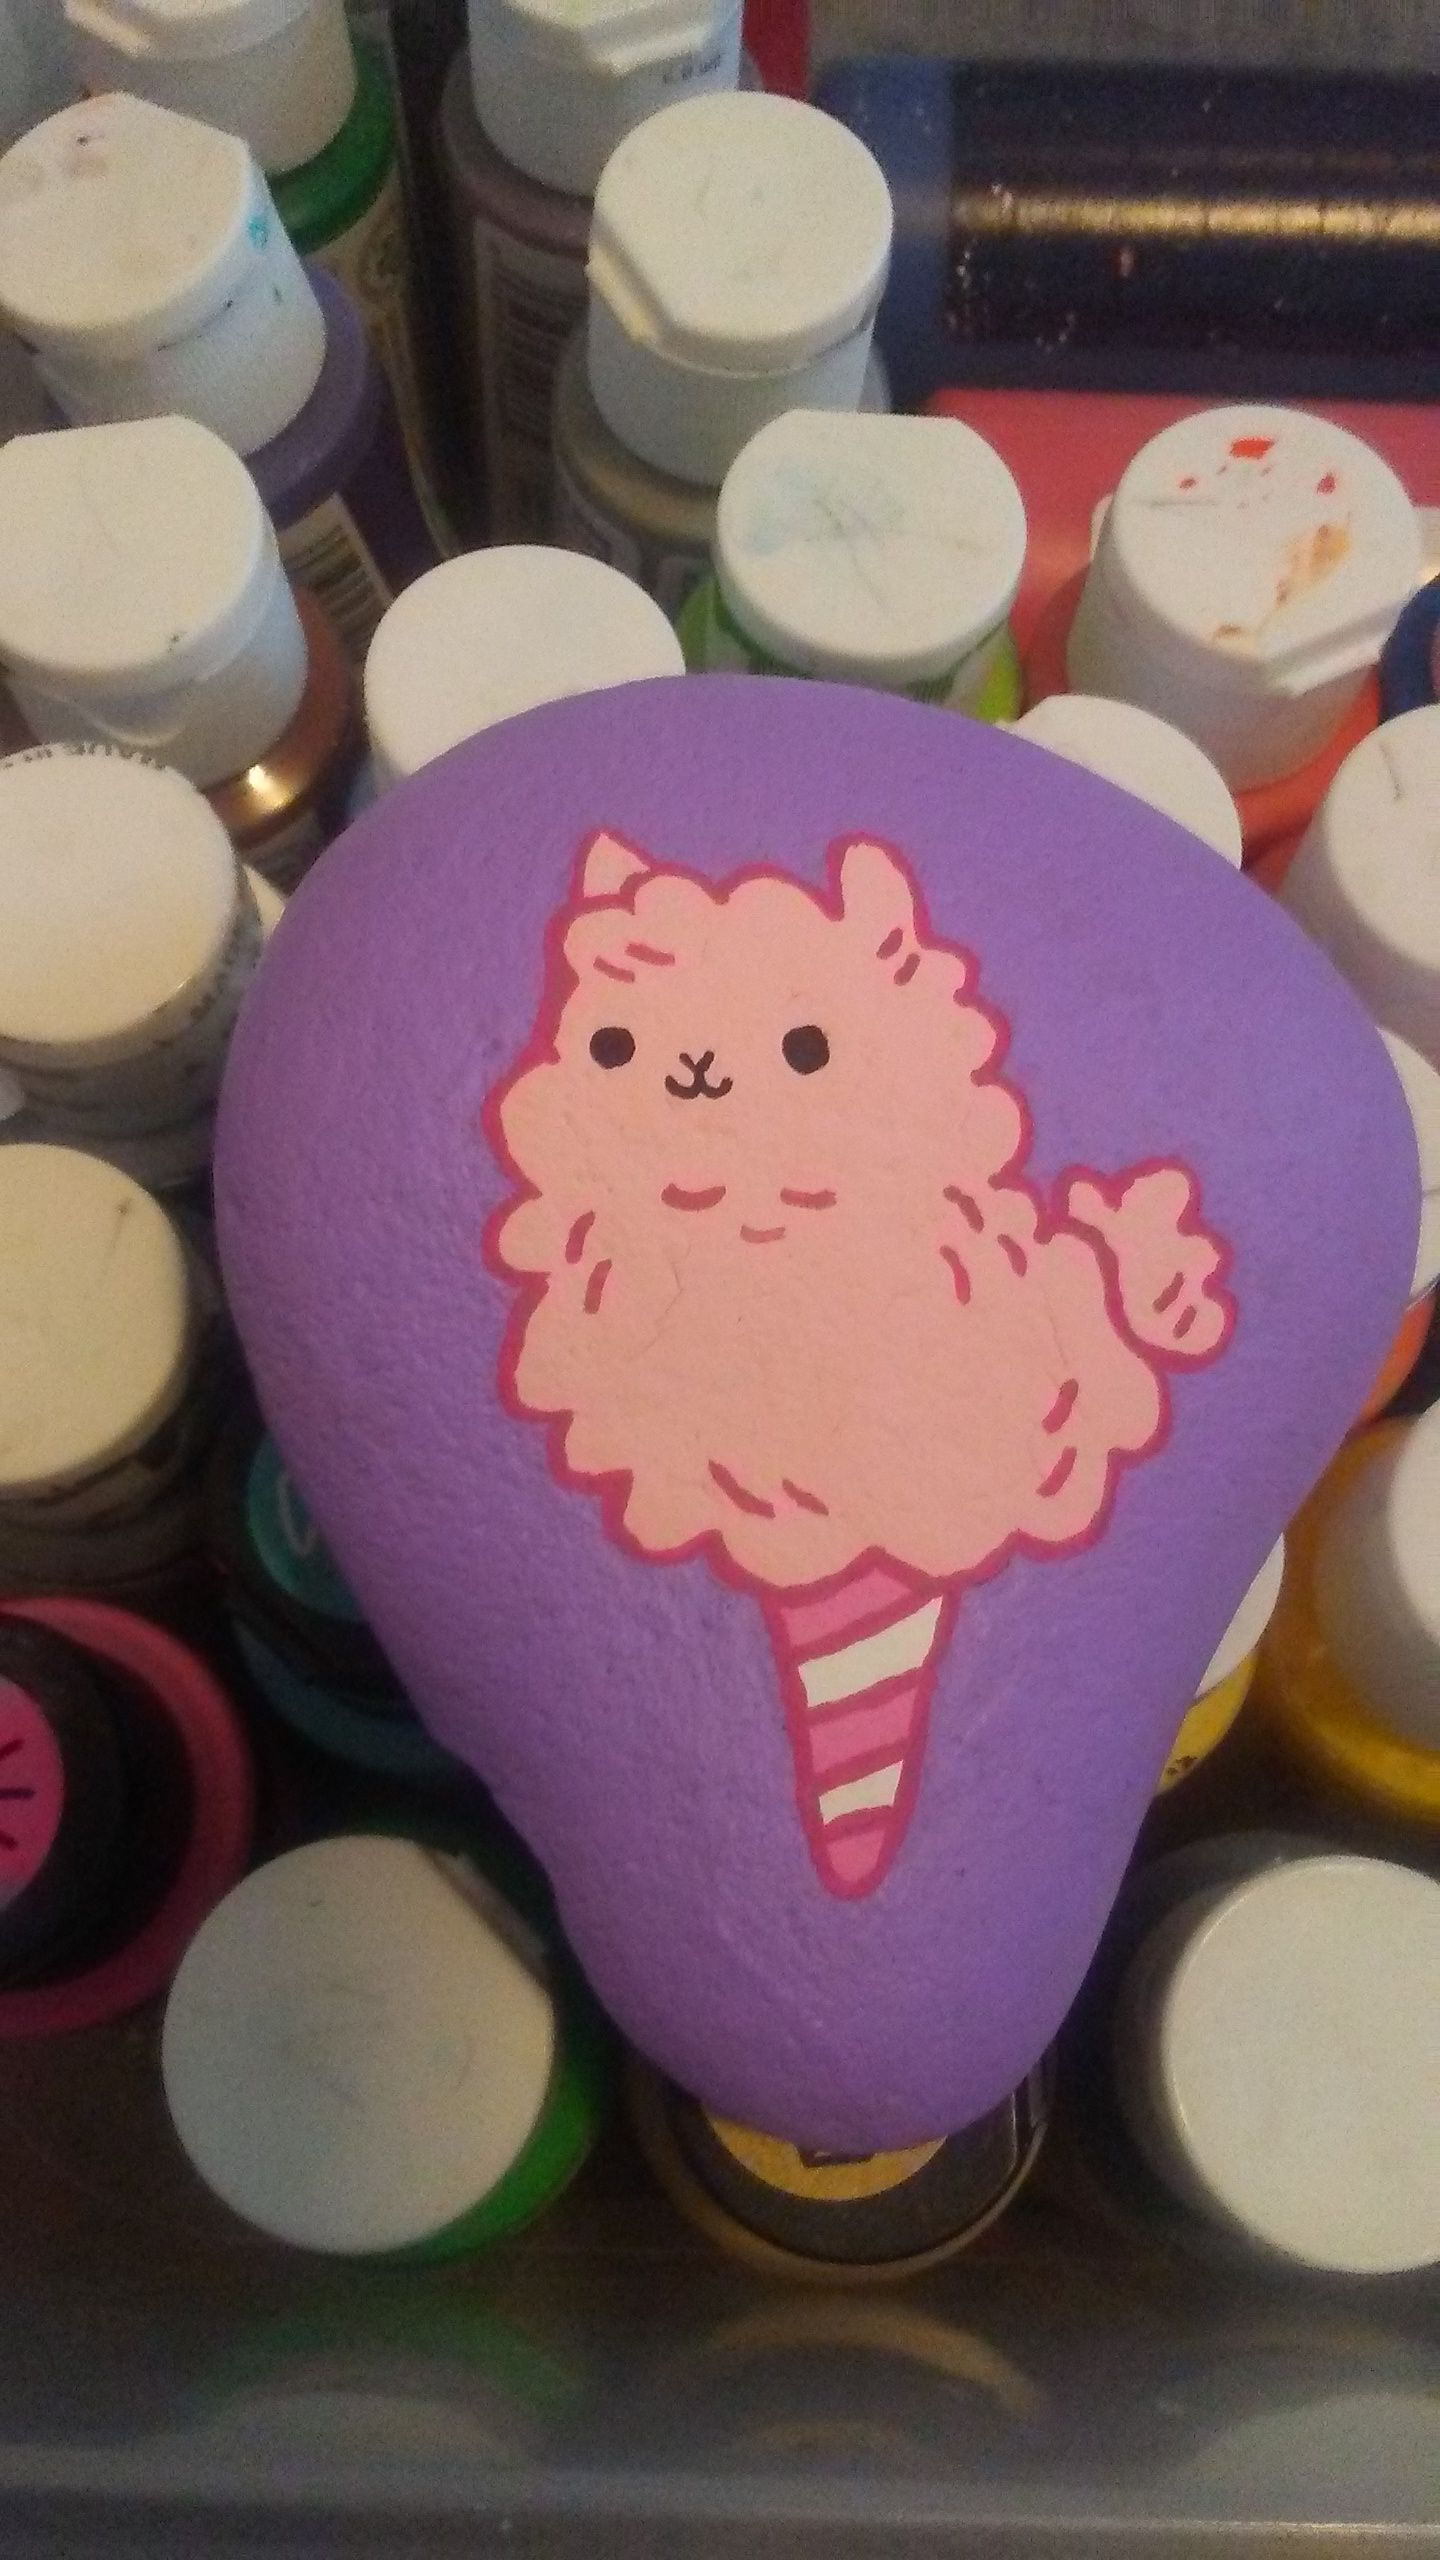 Pink Llama Cotton Candy Painted Rock 801 Rocks Rock Painting Patterns Painted Rocks Balloon Painting